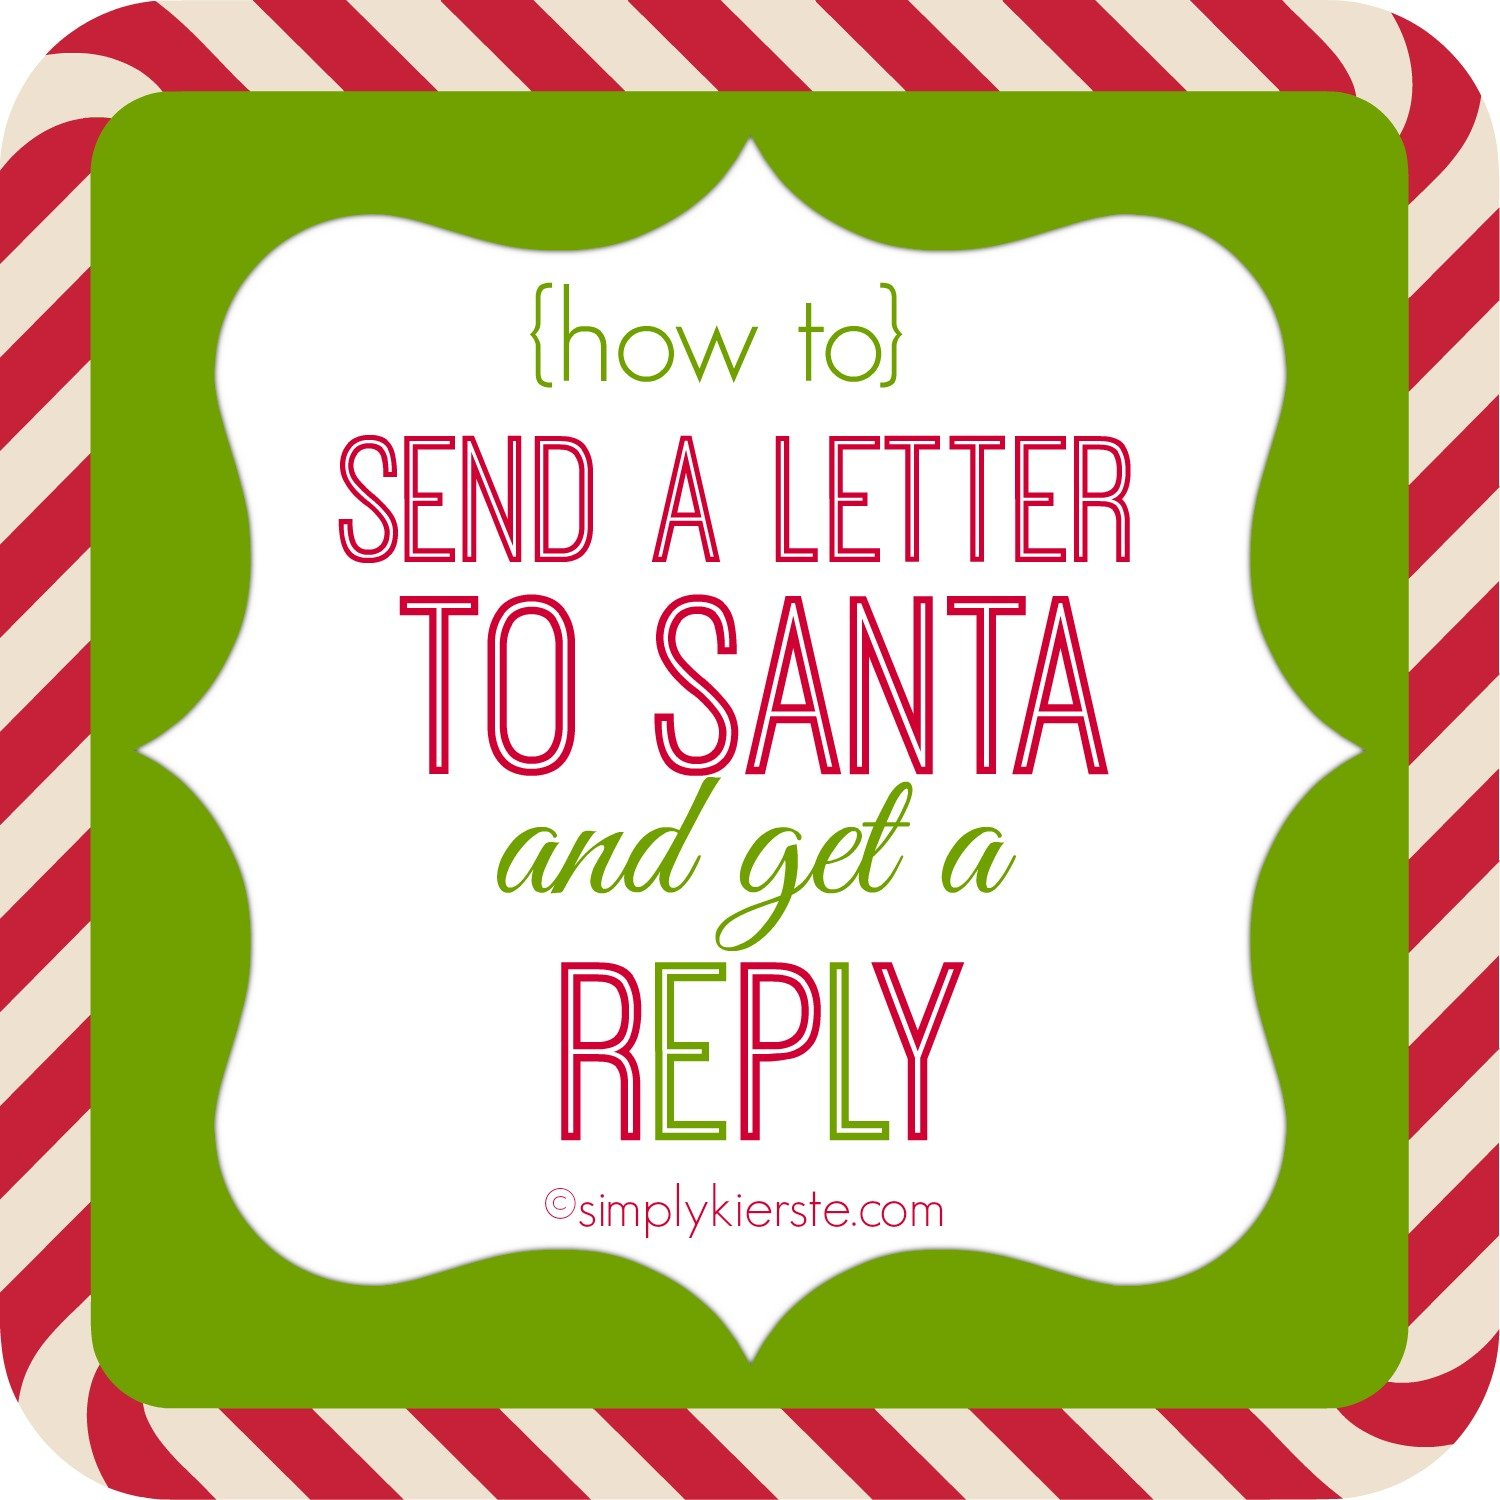 how to send letters to santa and get a reply simplykierstecom